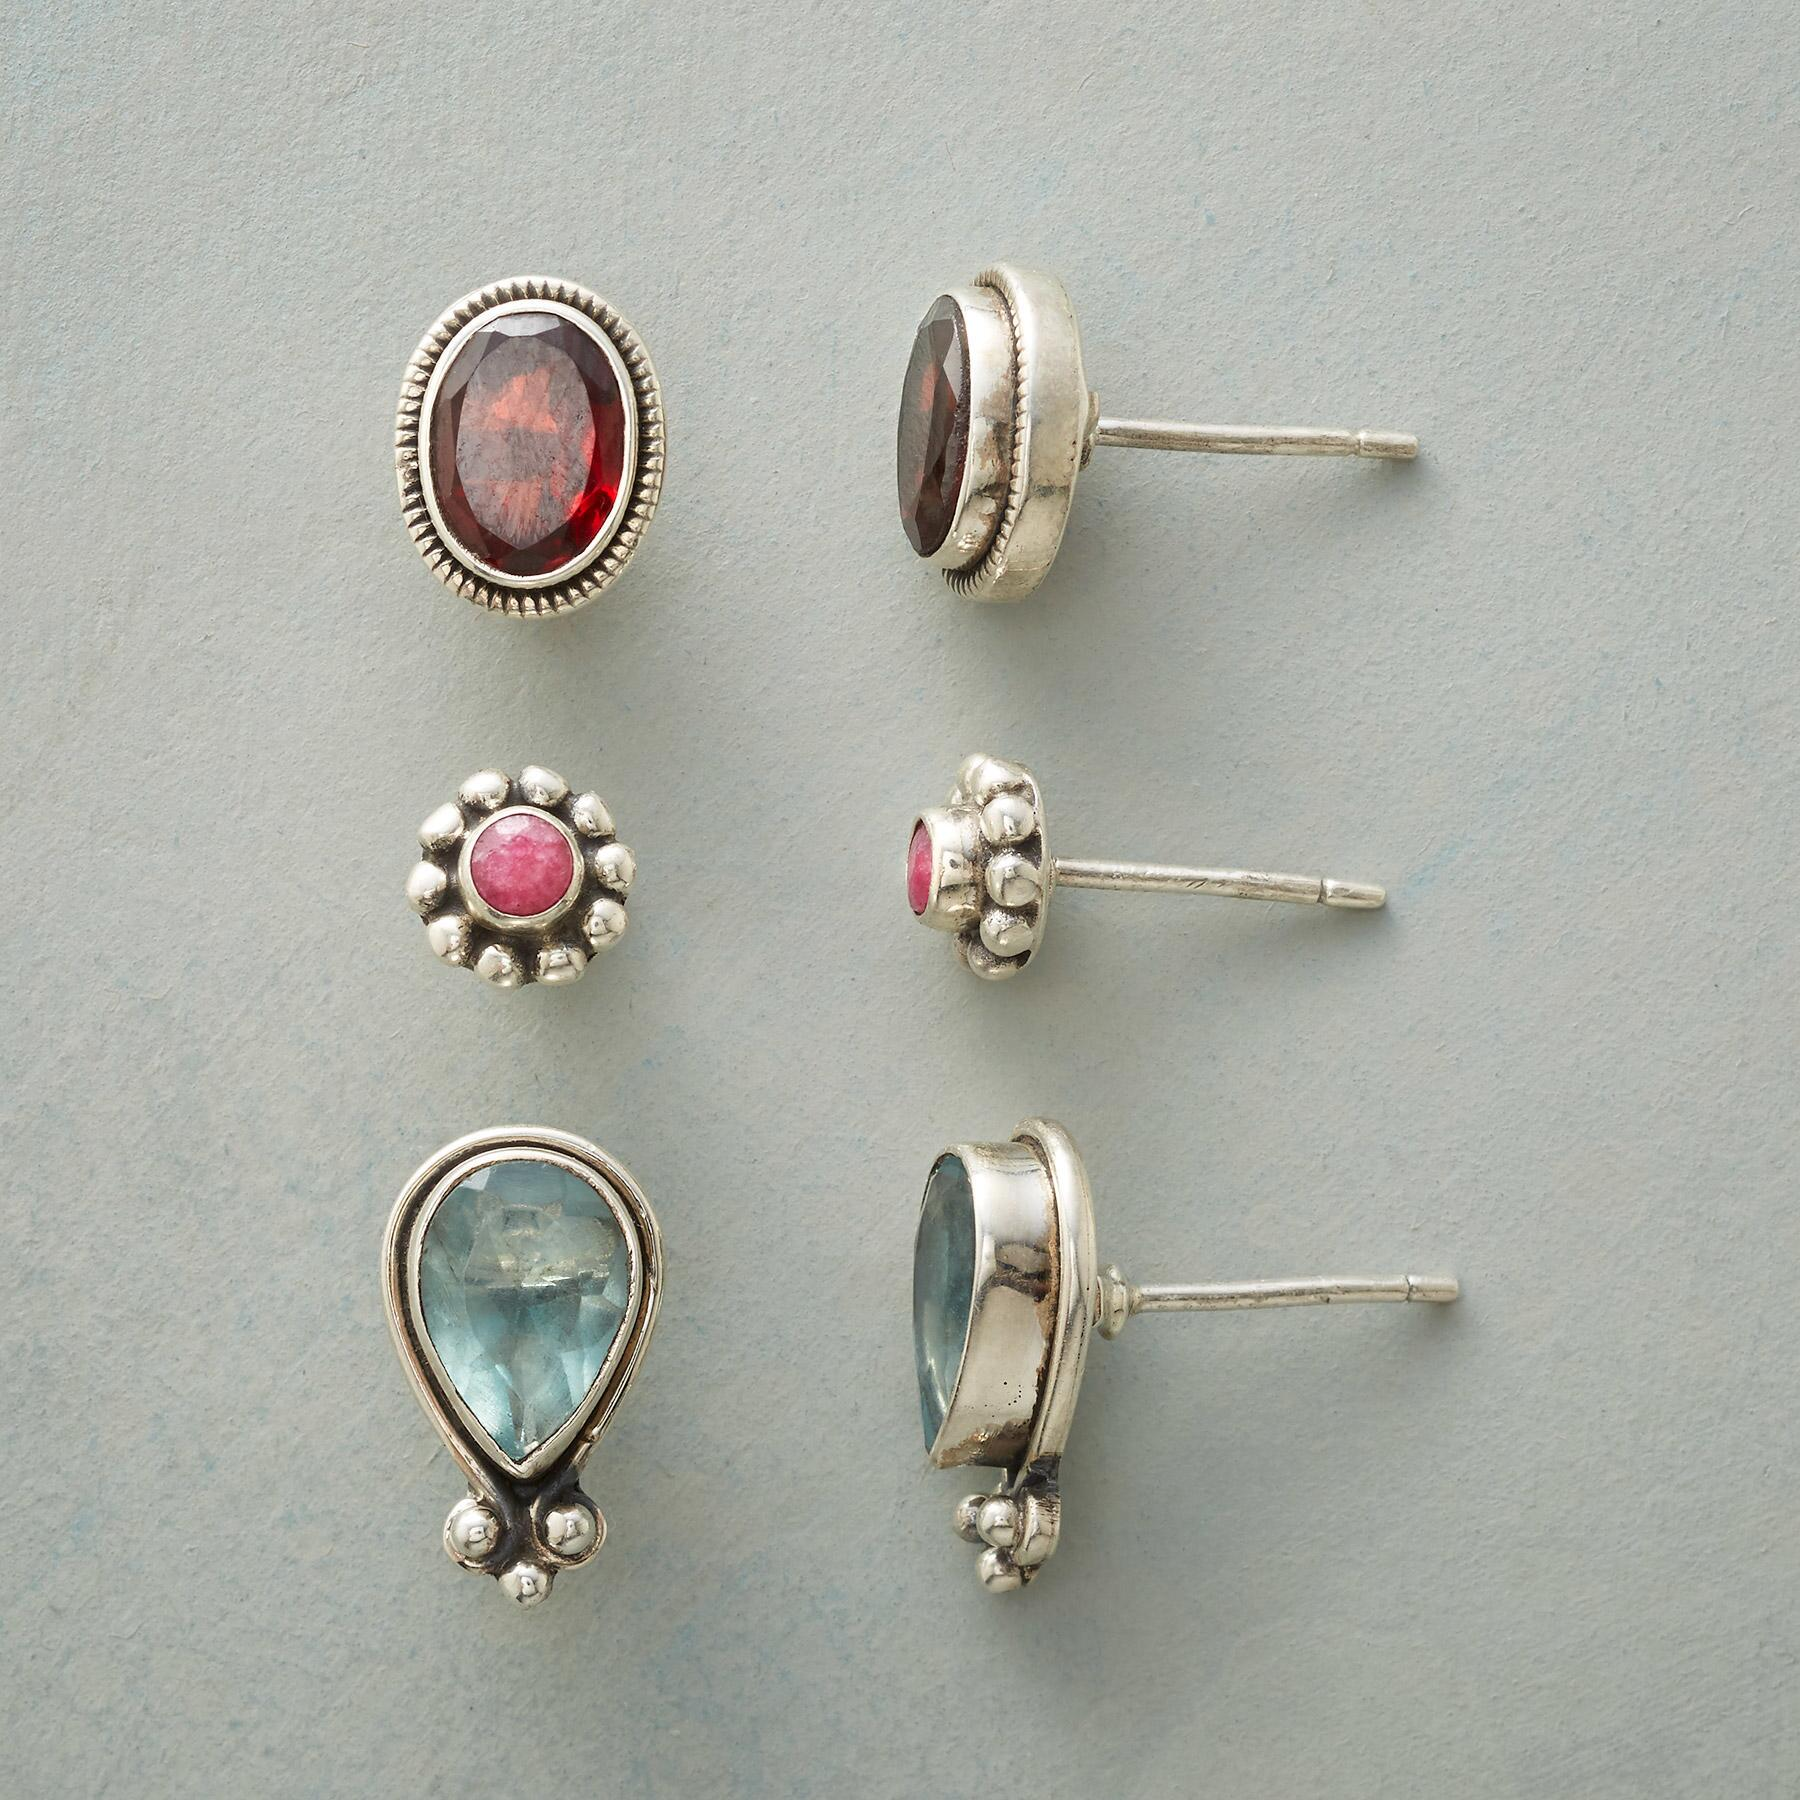 THREE A DAY EARRING TRIO: View 1